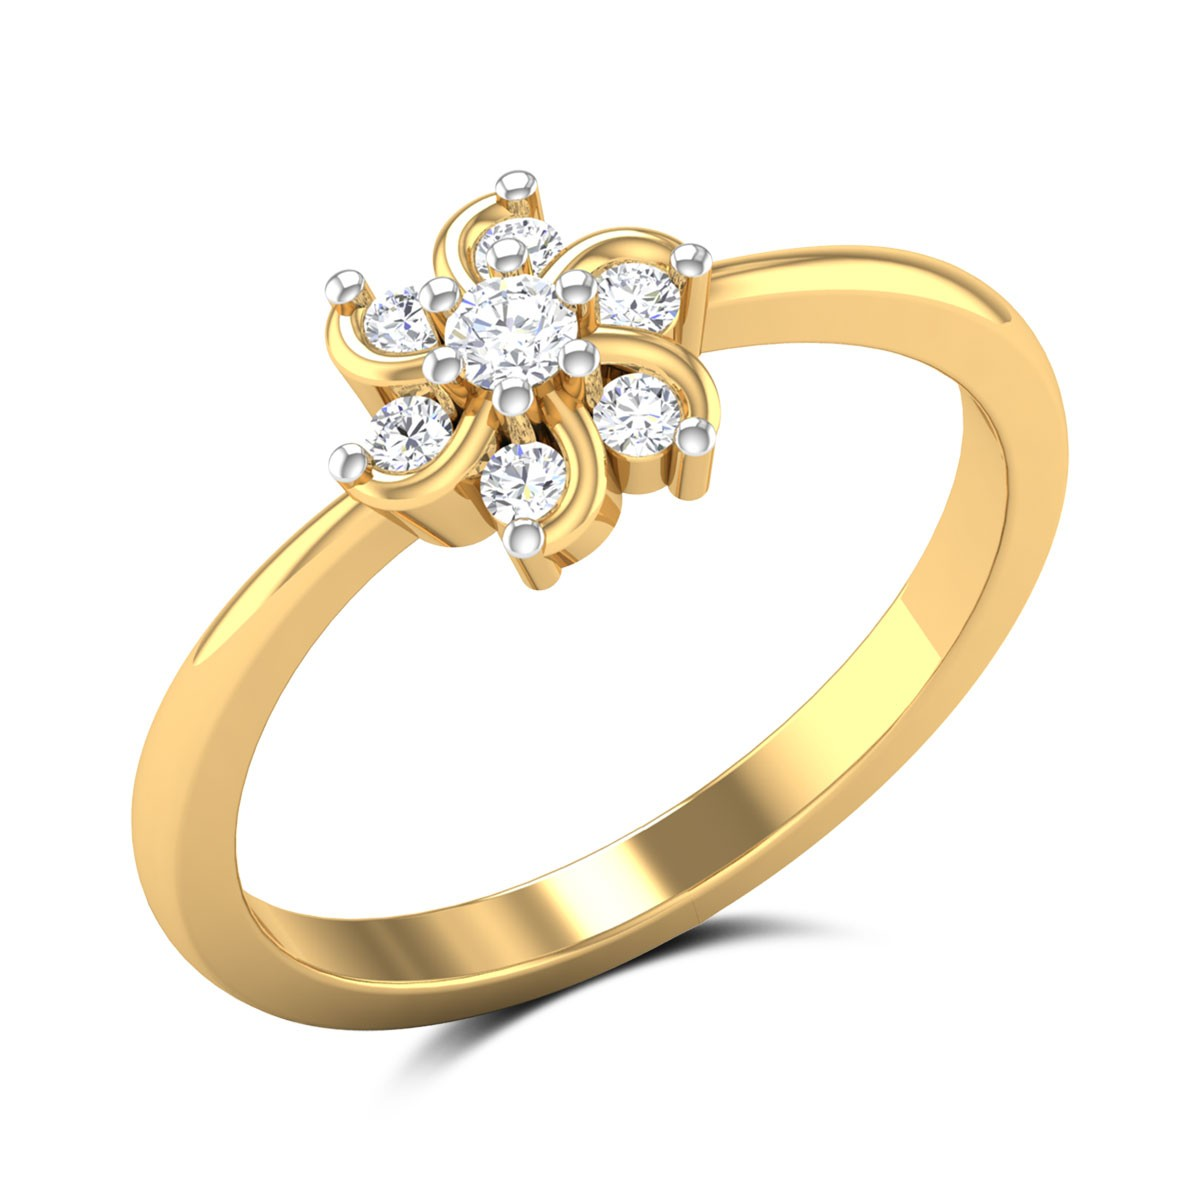 December Flower Diamond Ring